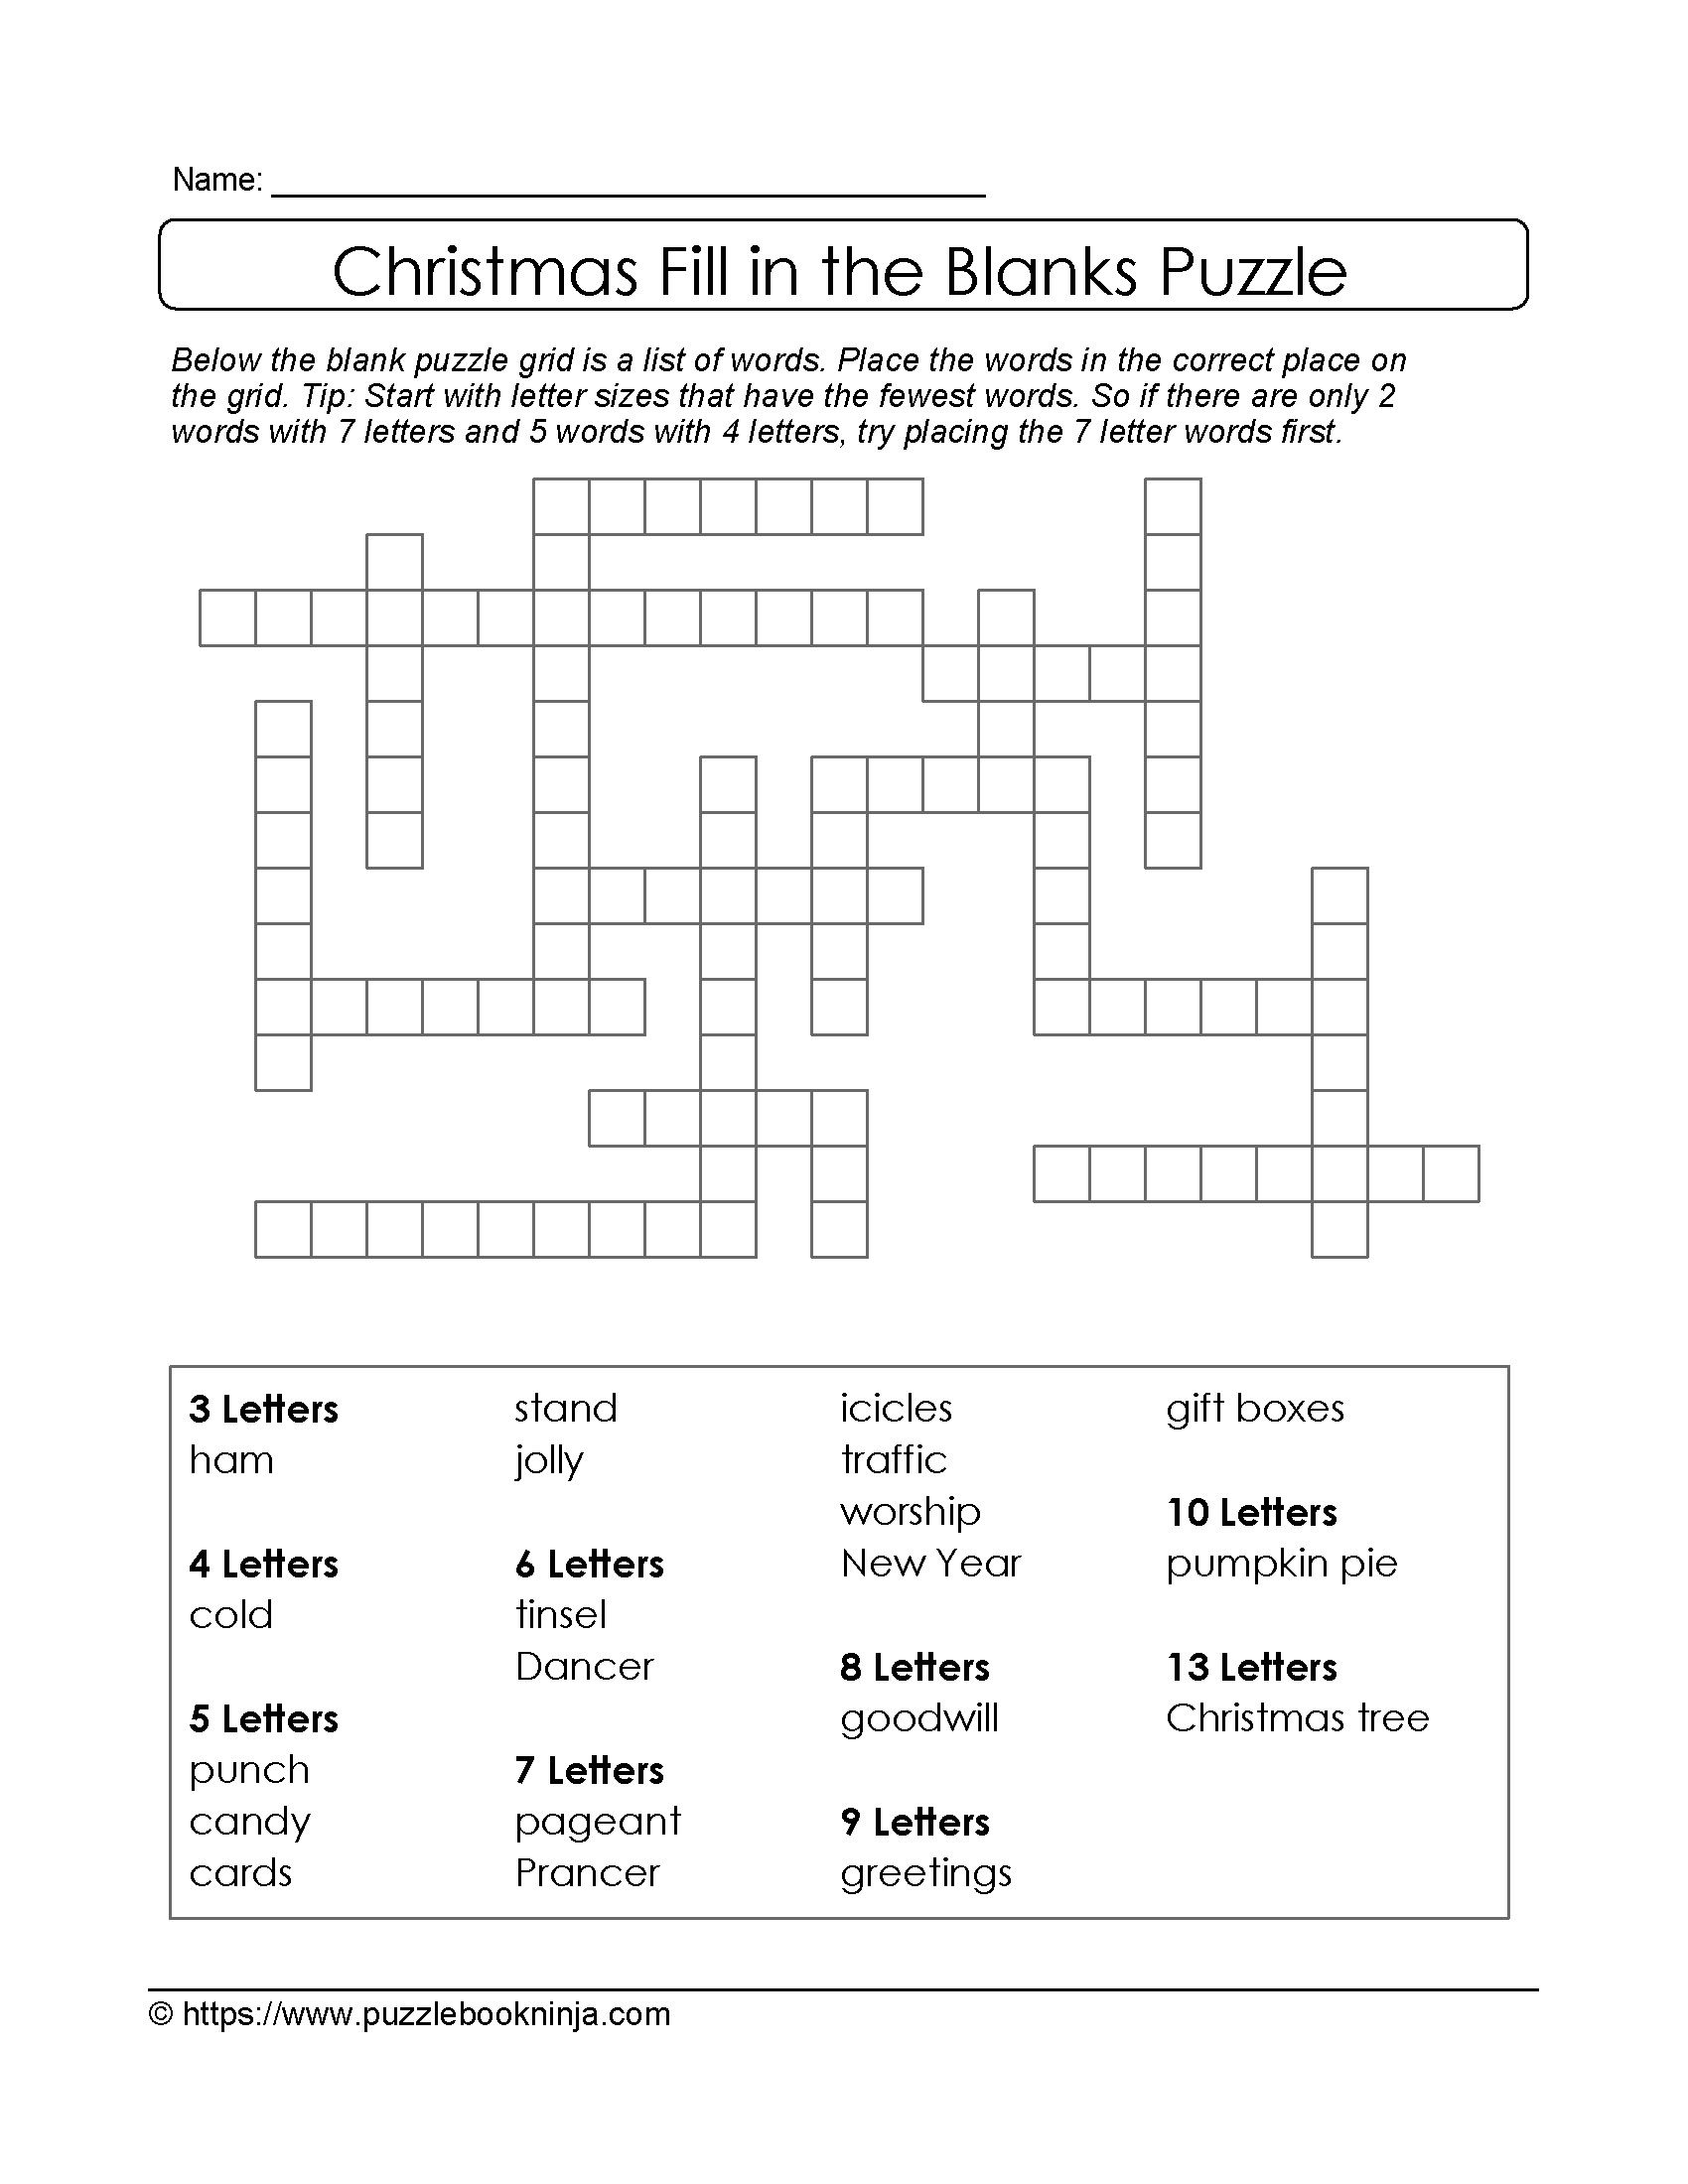 Freebie Xmas Puzzle To Print. Fill In The Blanks Crossword Like - Printable Crossword Puzzle Grid